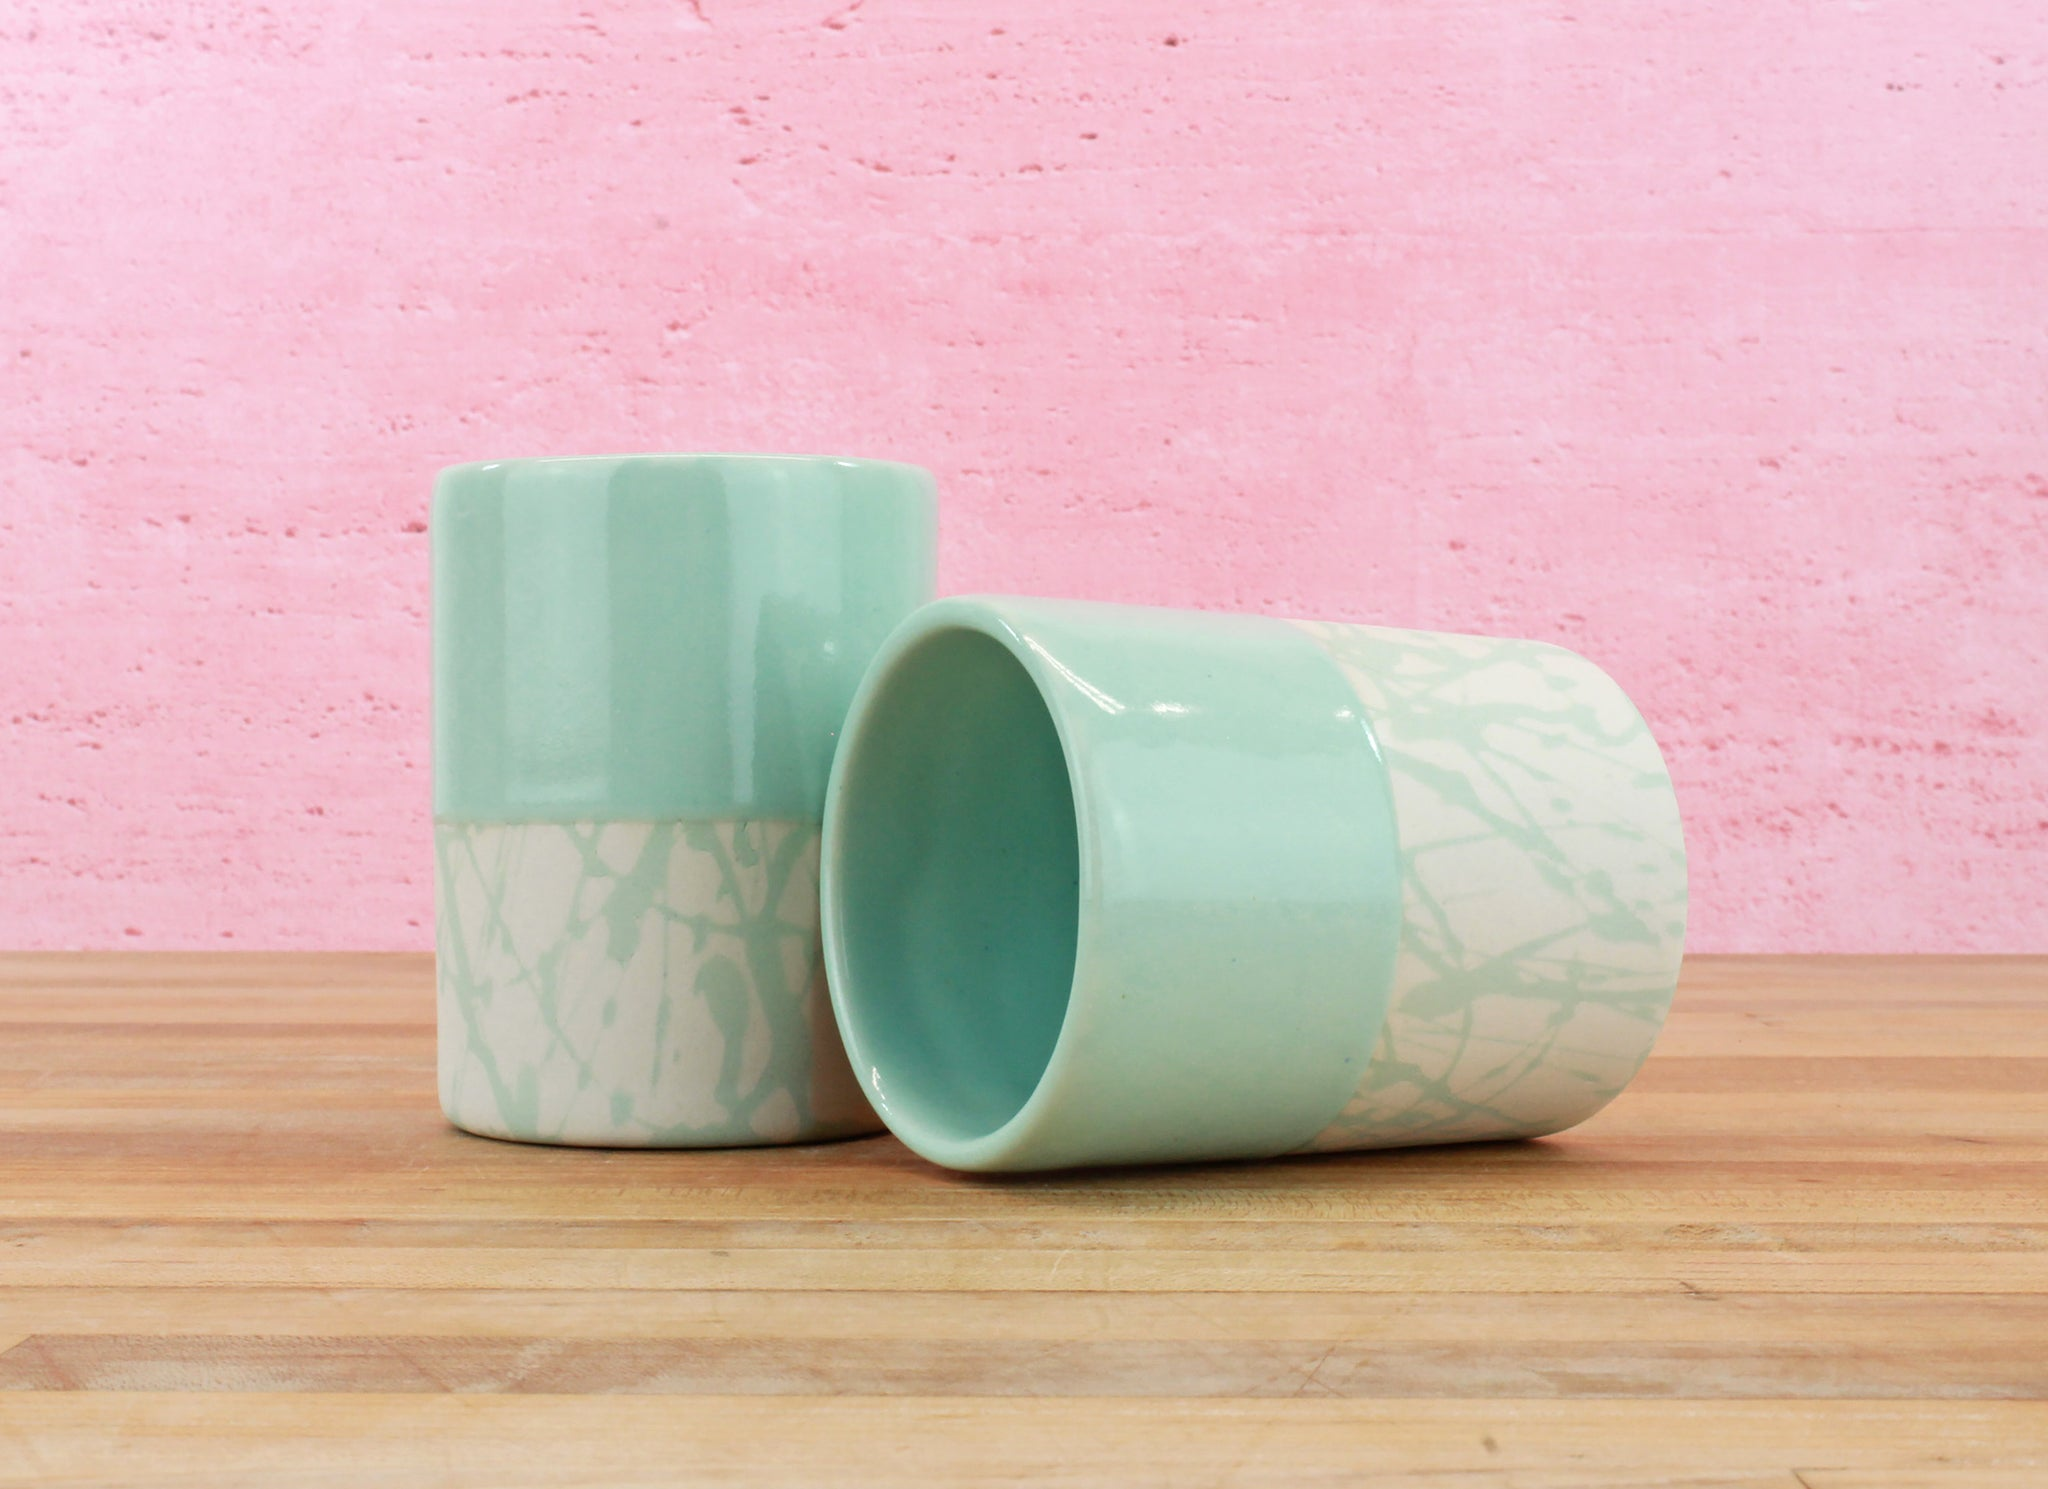 Limited Edition 8 Ounce Cup - Mint Glaze over Mint/Cream Splatter